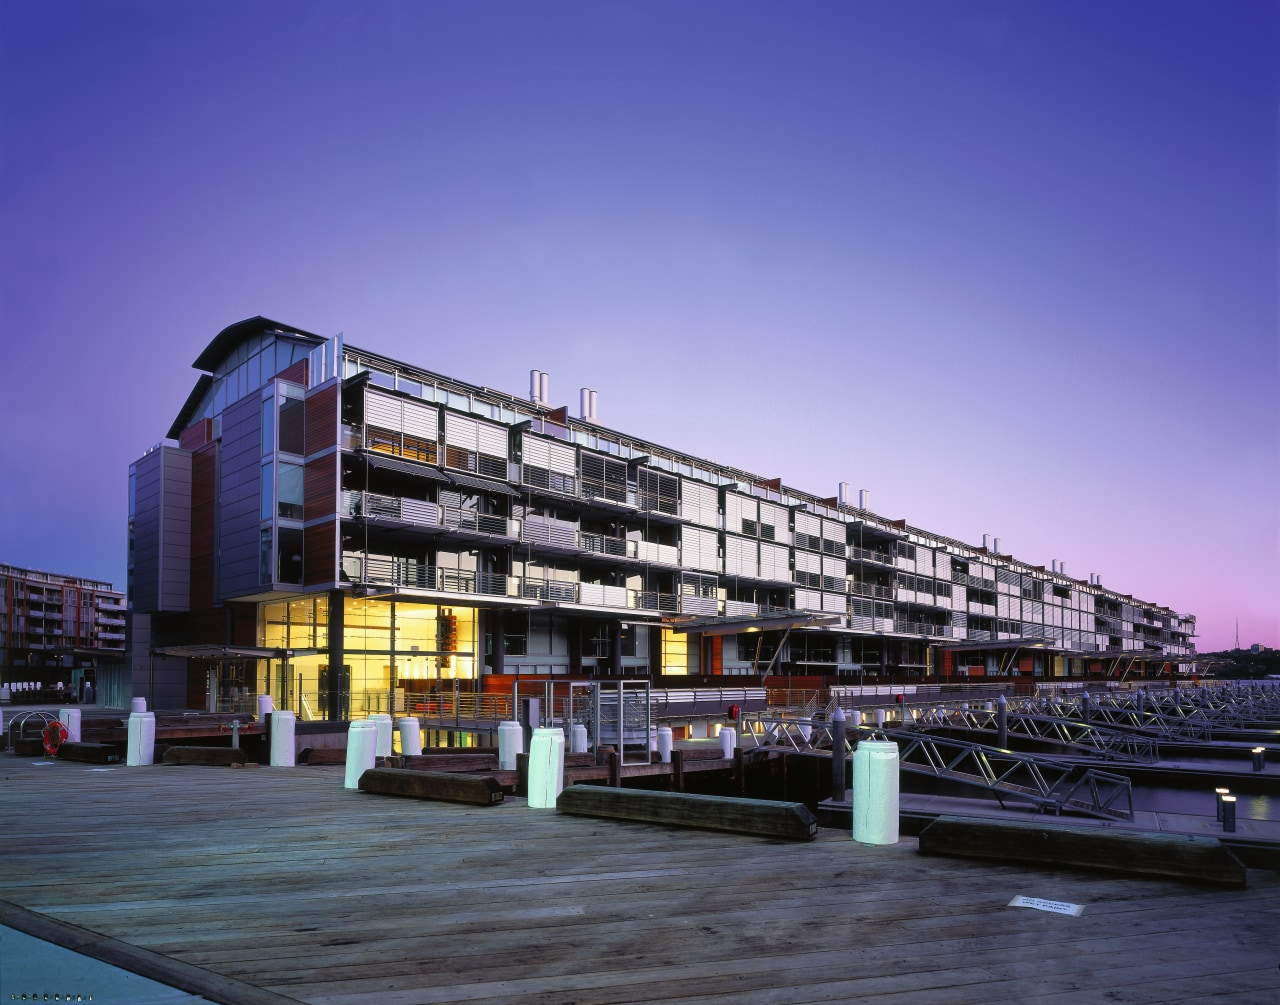 view of apartments located on the pier architecture, building, city, condominium, corporate headquarters, evening, facade, metropolis, metropolitan area, mixed use, reflection, residential area, sky, blue